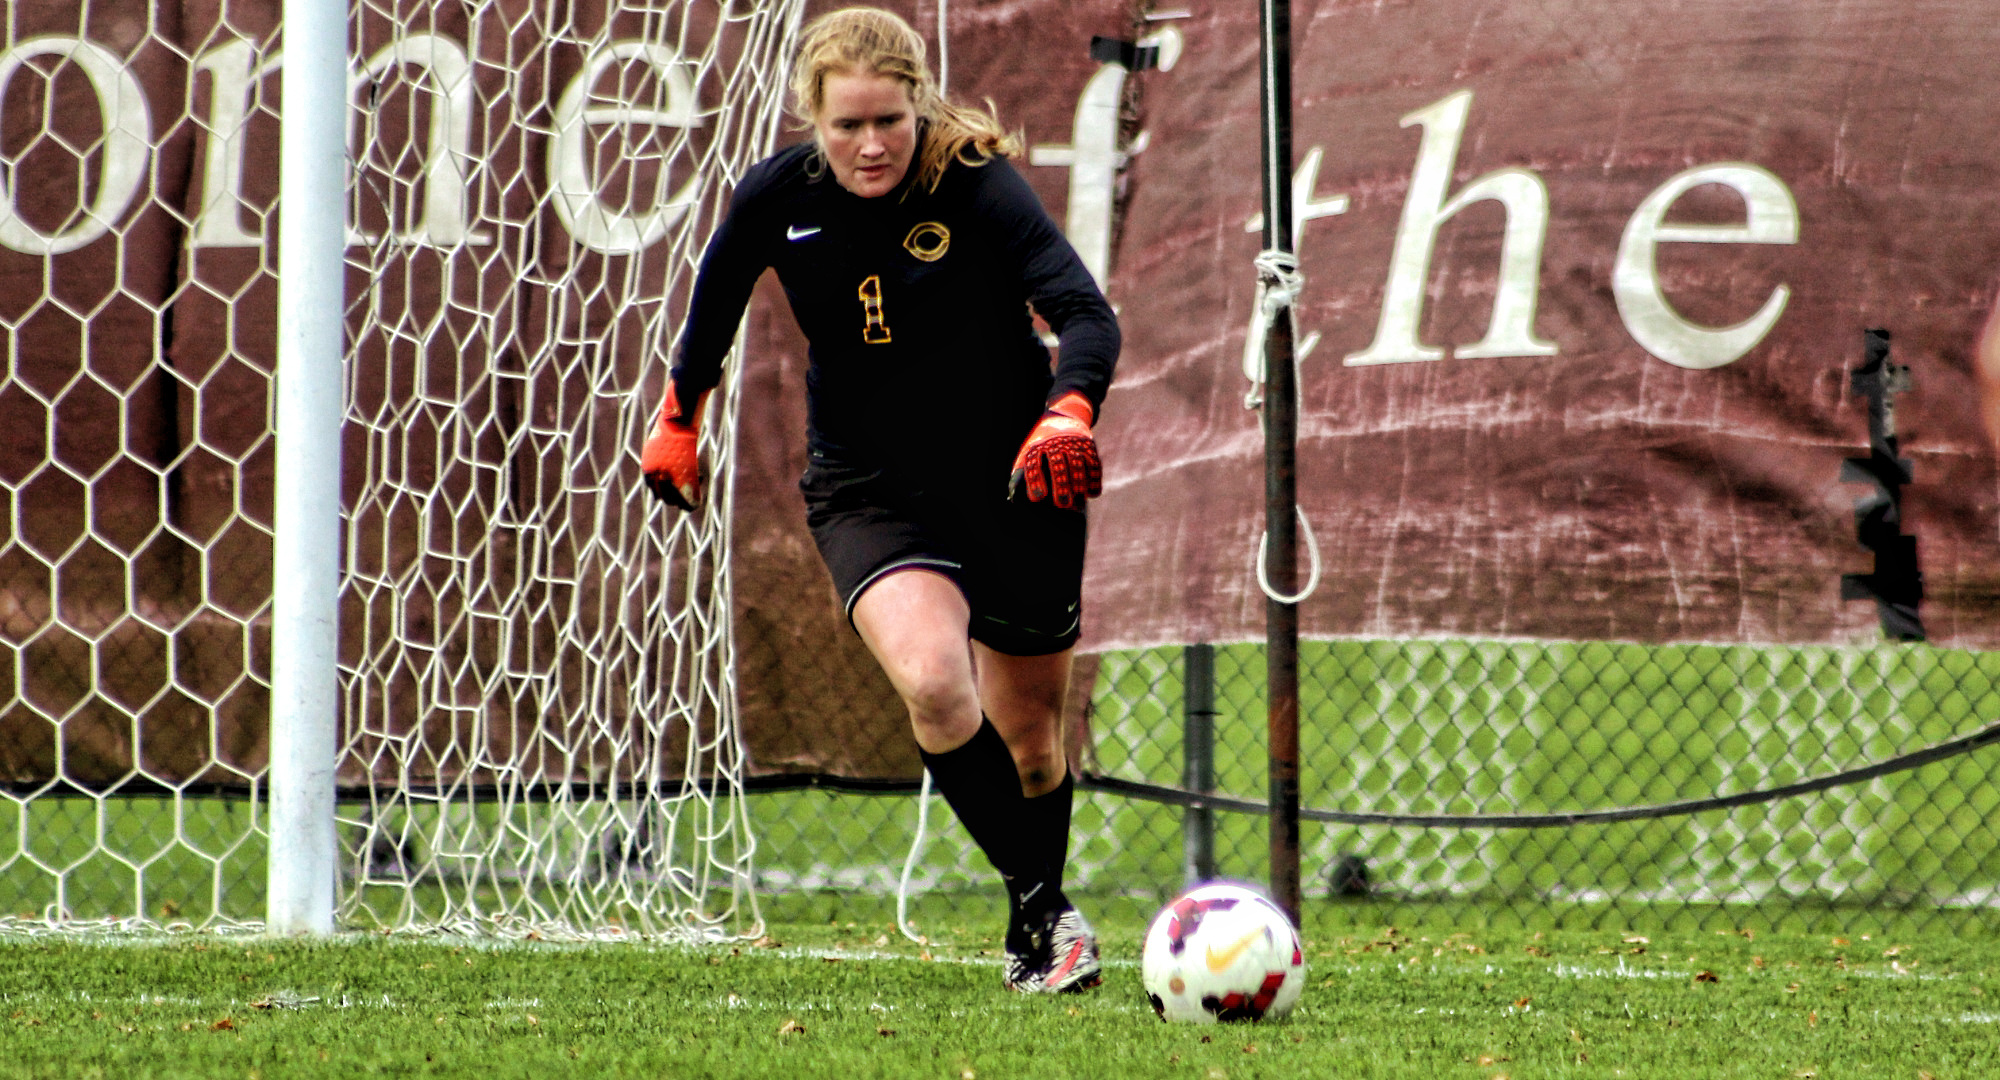 Junior goalie Maddy Reed made four saves in the Cobbers' 0-0 double overtime tie with Alma.